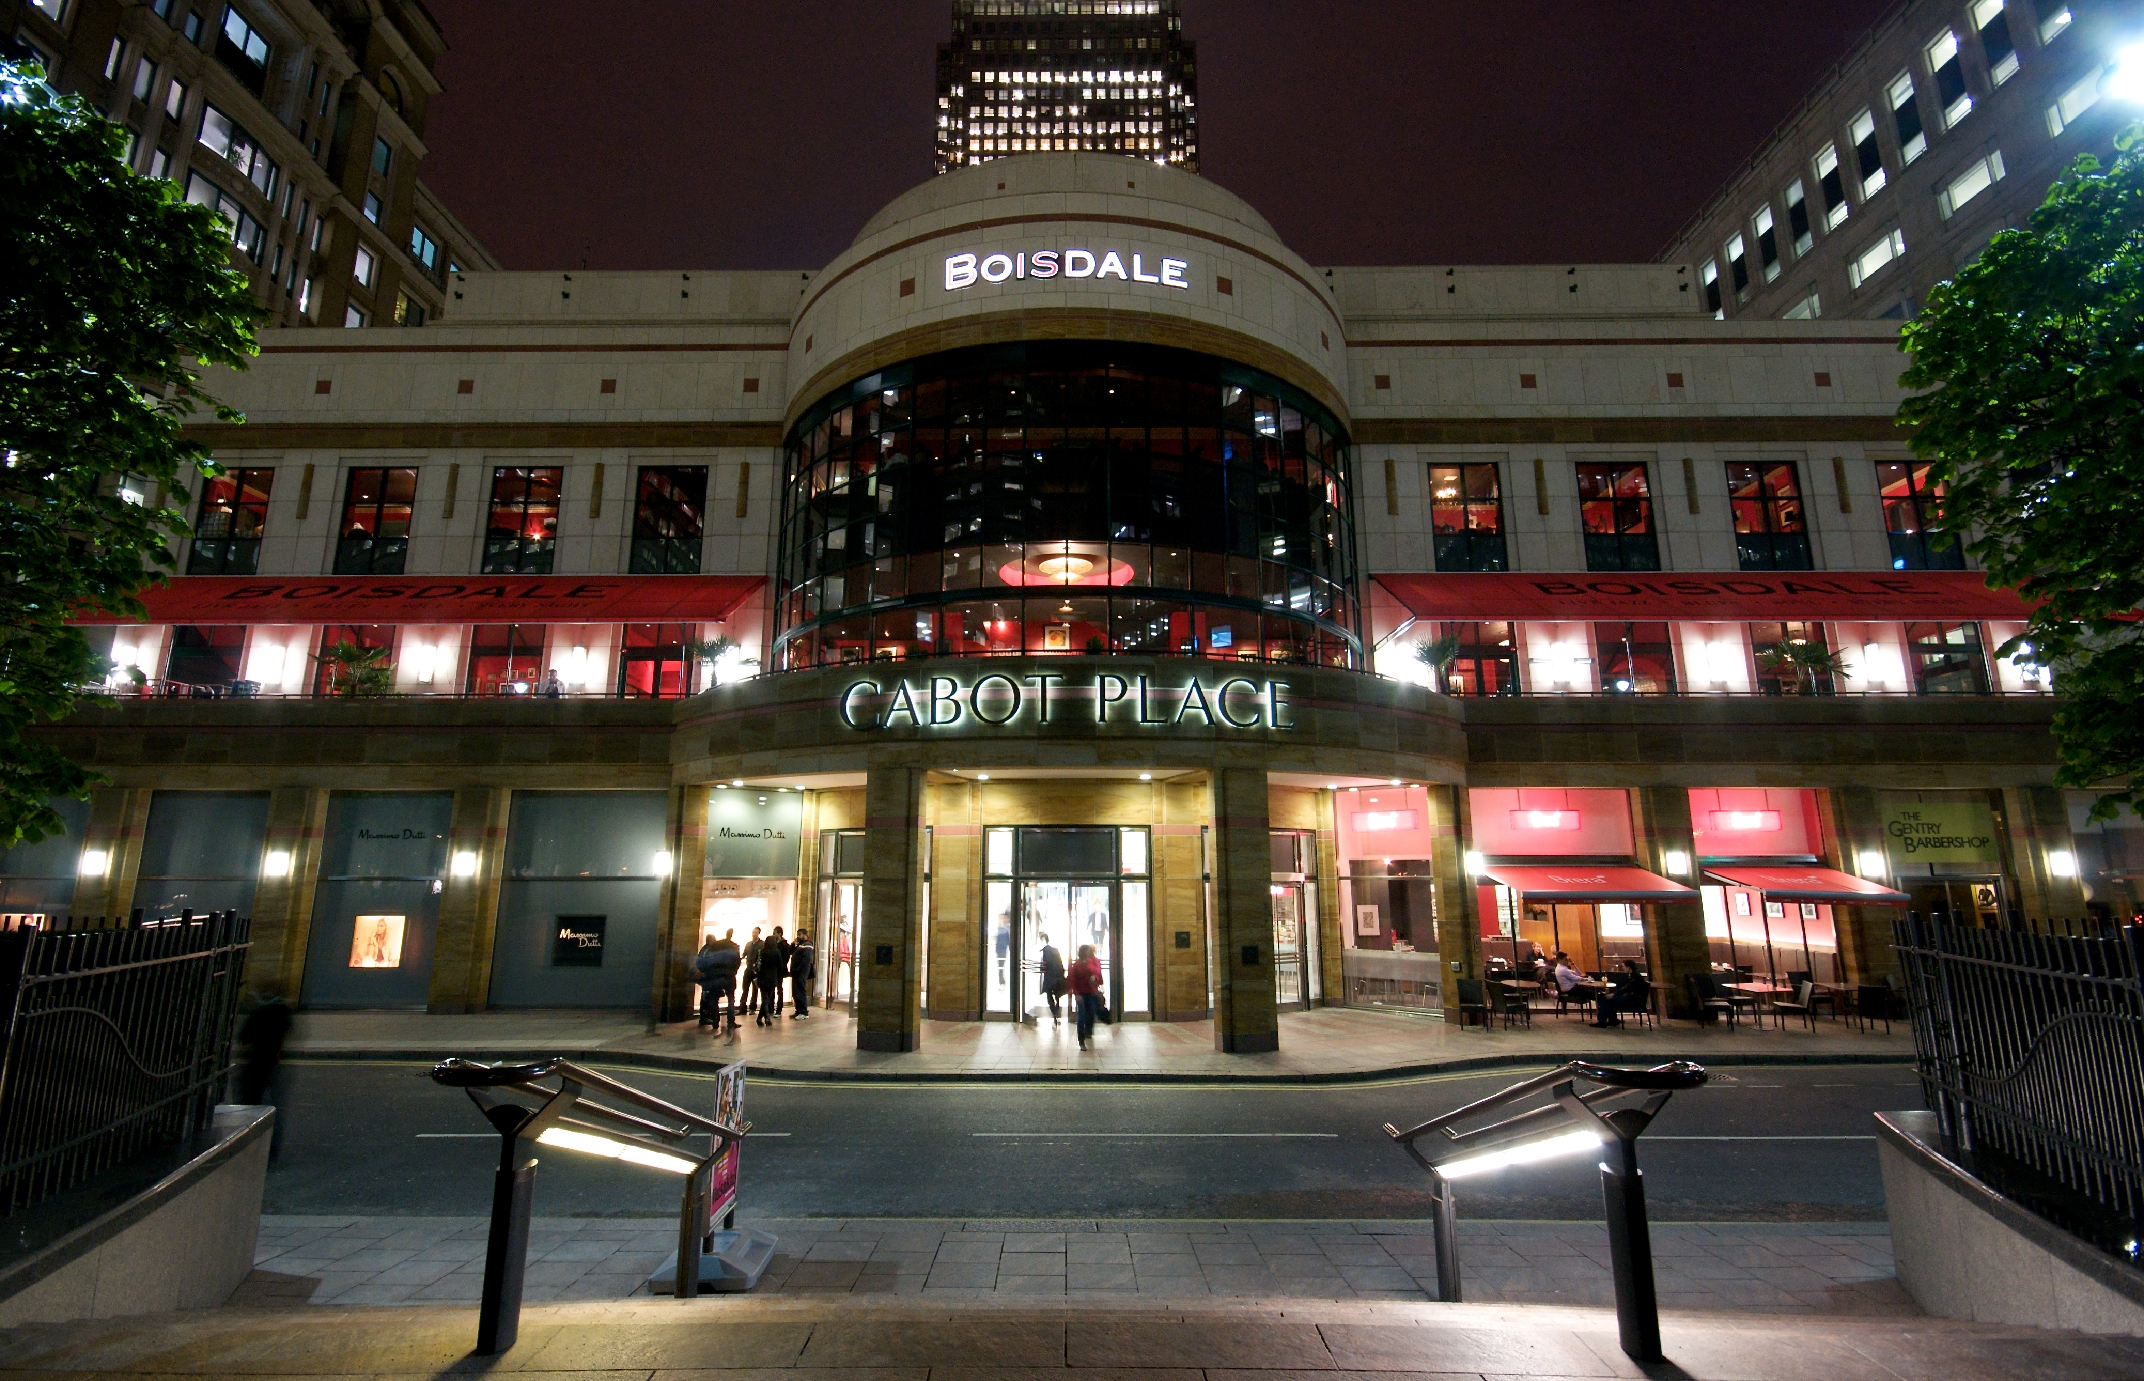 Boisdale of Canary Wharf Profile Pic